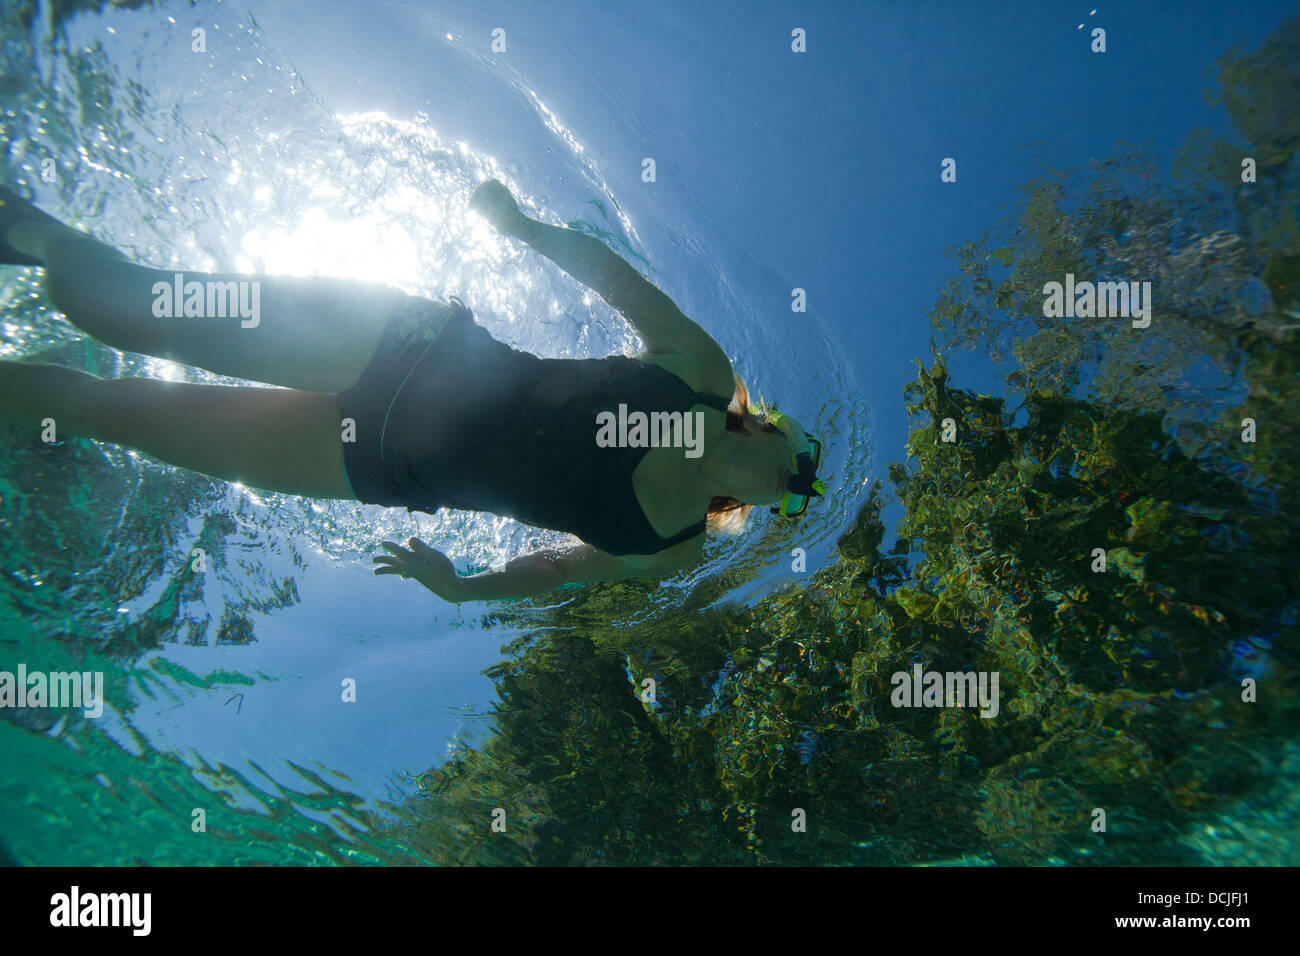 Female model swimming under water with a one piece bathing suit while using a snorkeling mask and snorkel - Stock Image